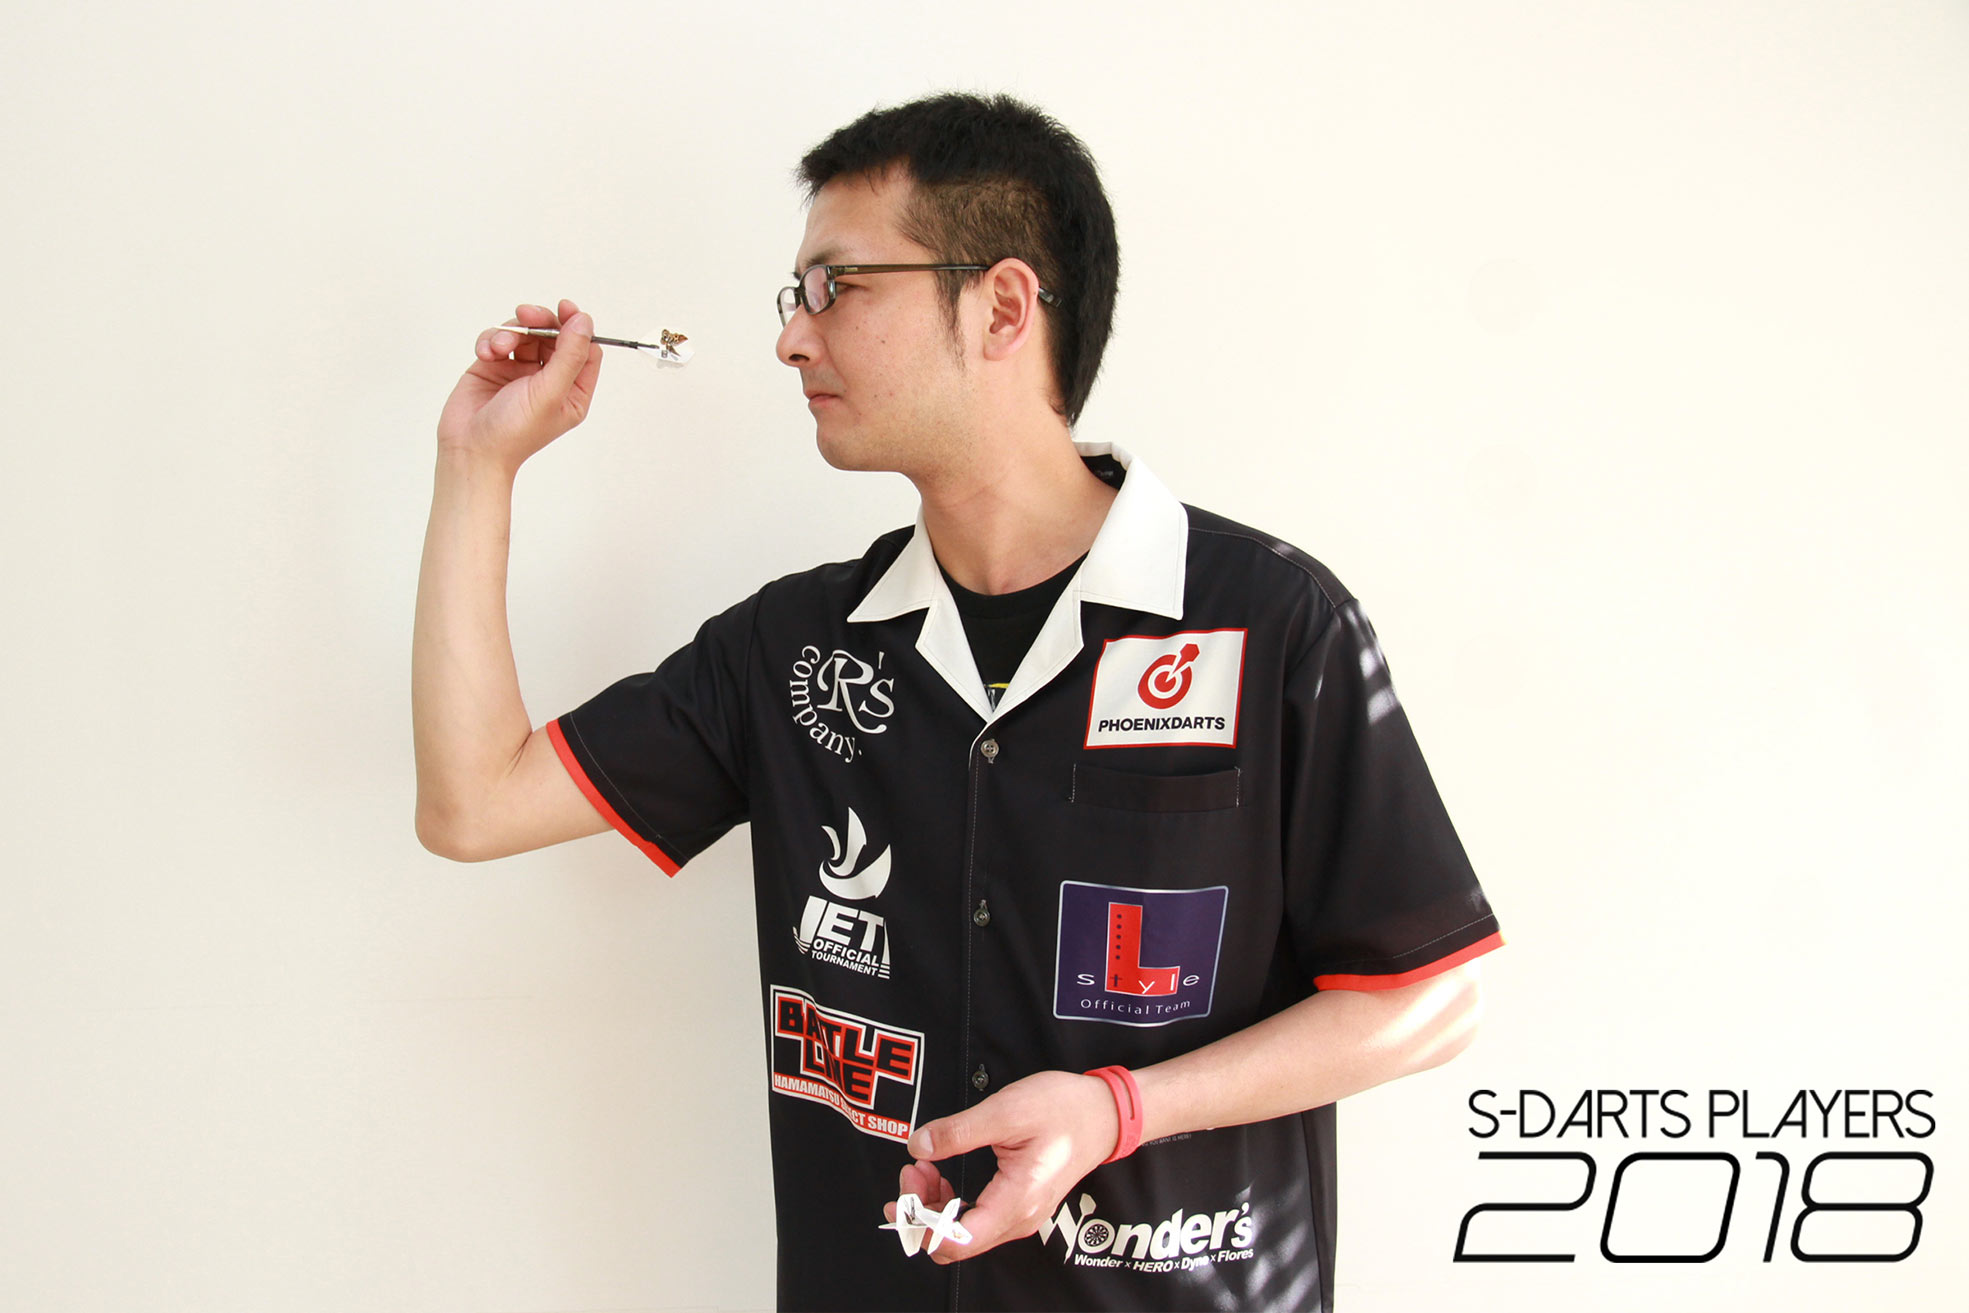 S-DARTS PLAYERS 2018│松浦 悠太